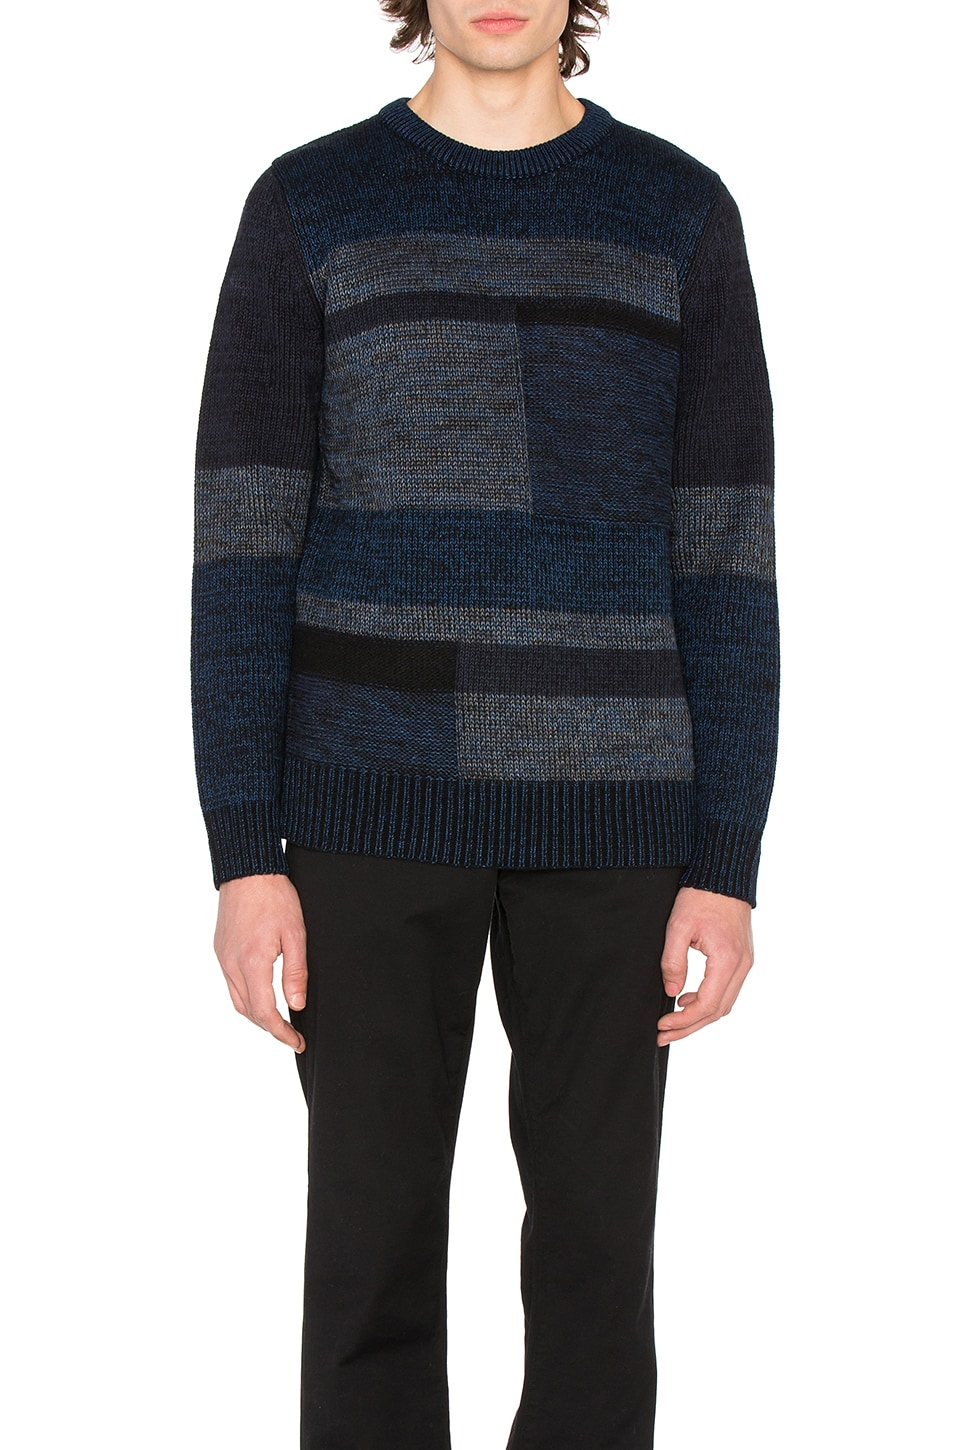 Gradation Sweater by Deus Ex Machina